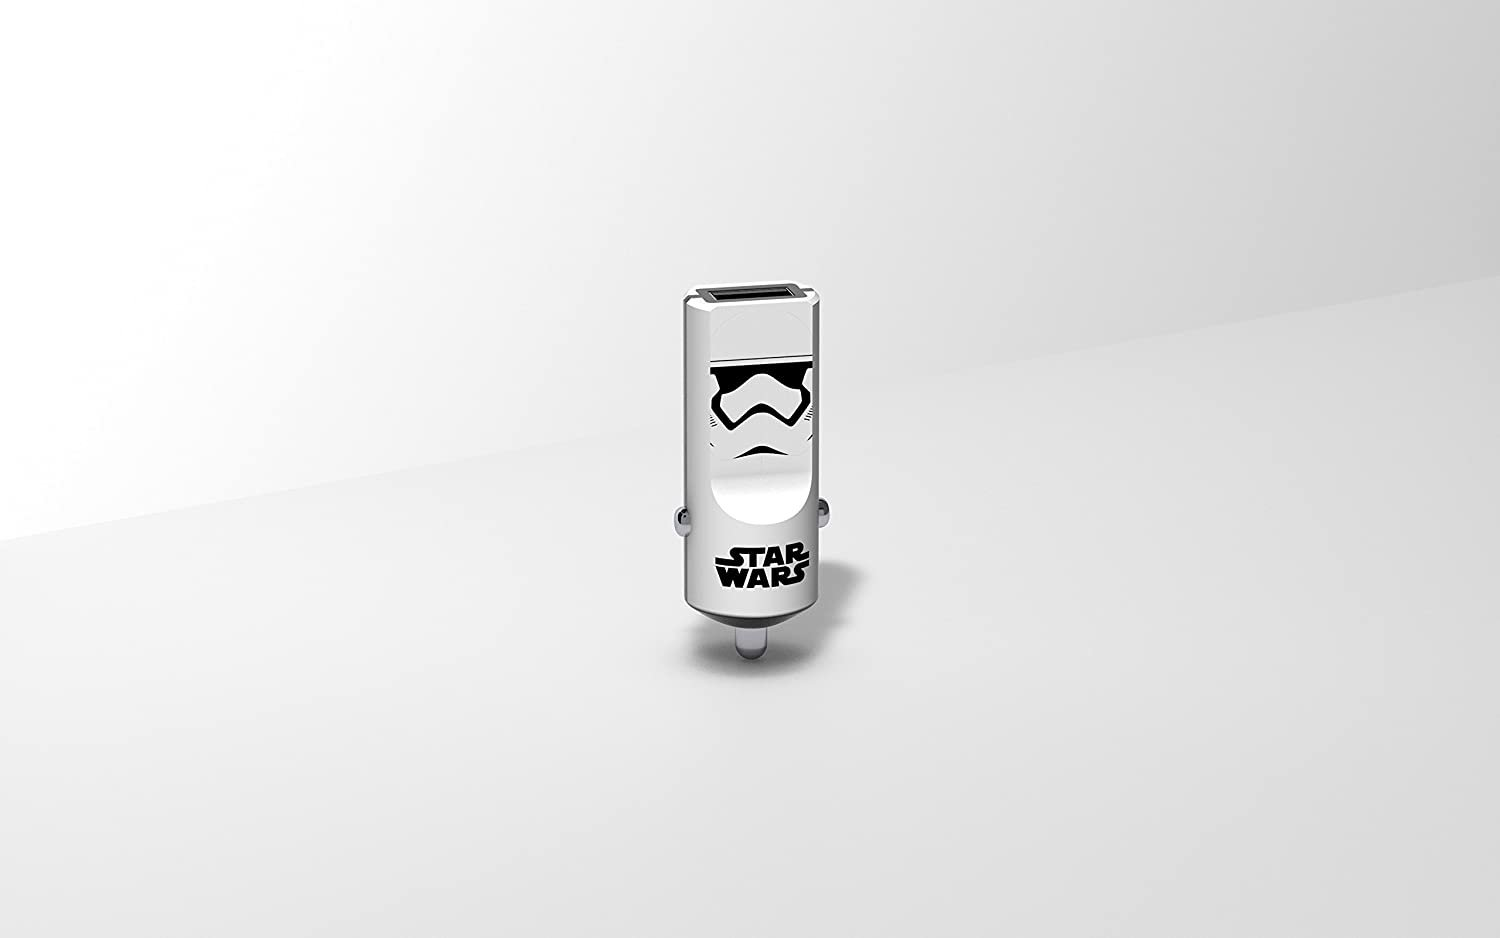 Star Wars car charger